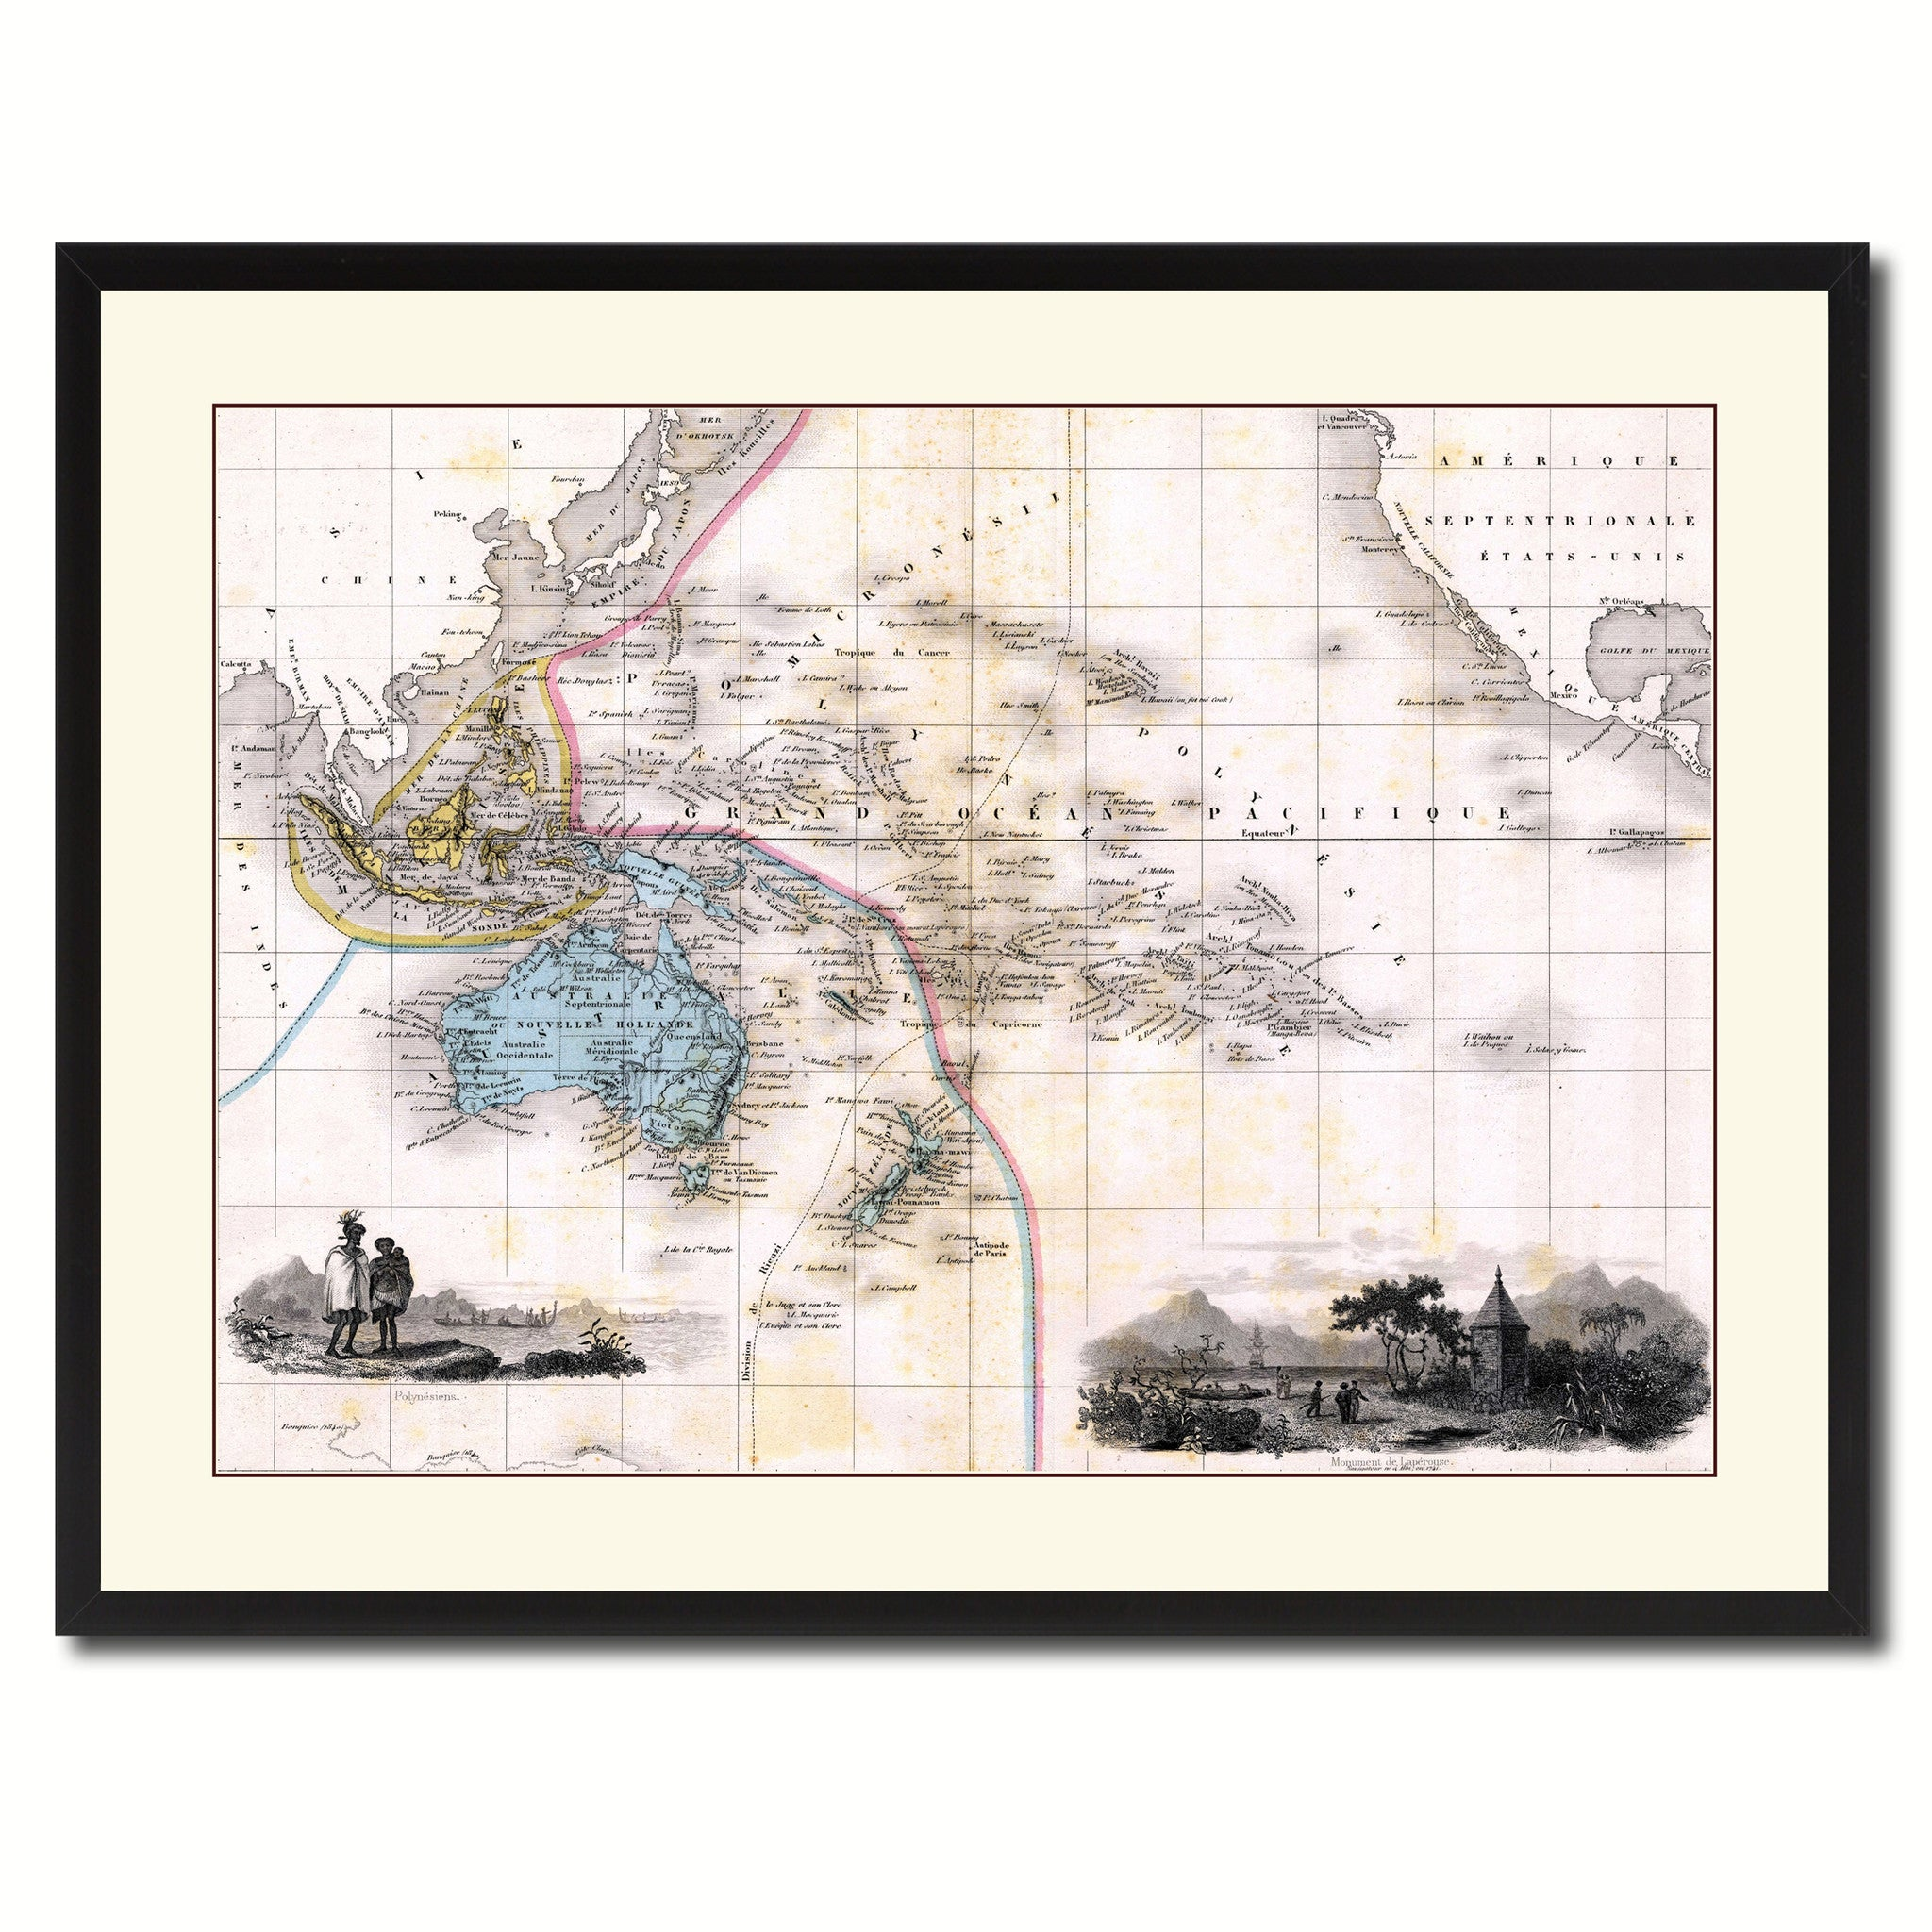 Oceania Australia New Zealand Vintage Antique Map Wall Art Home Decor Gift Ideas Ebay